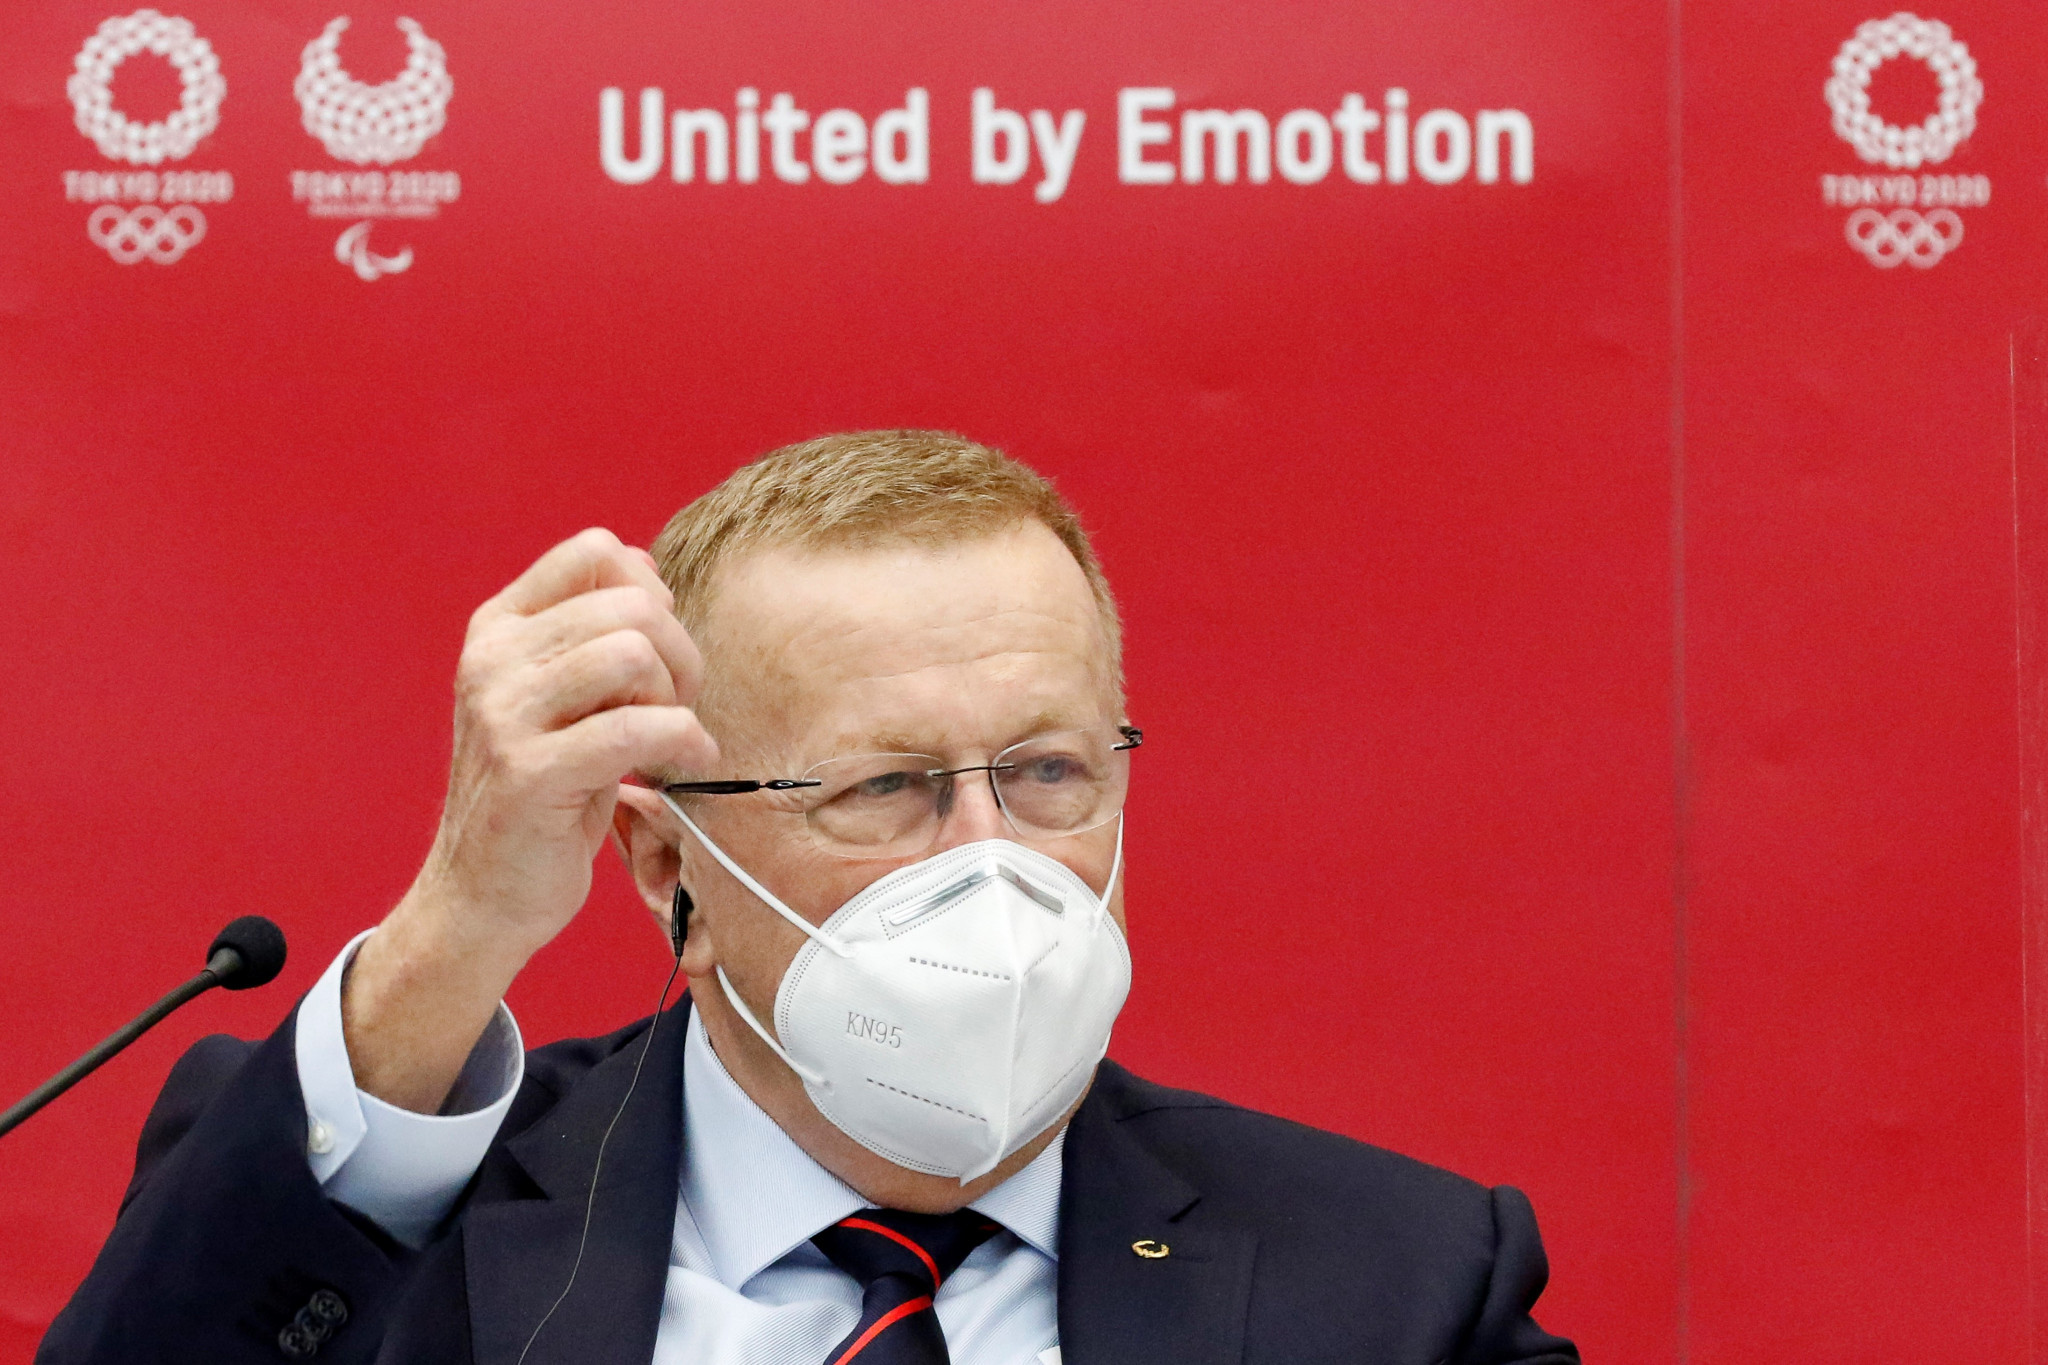 John Coates will chair the Coordination Commission remotely ©Getty Images